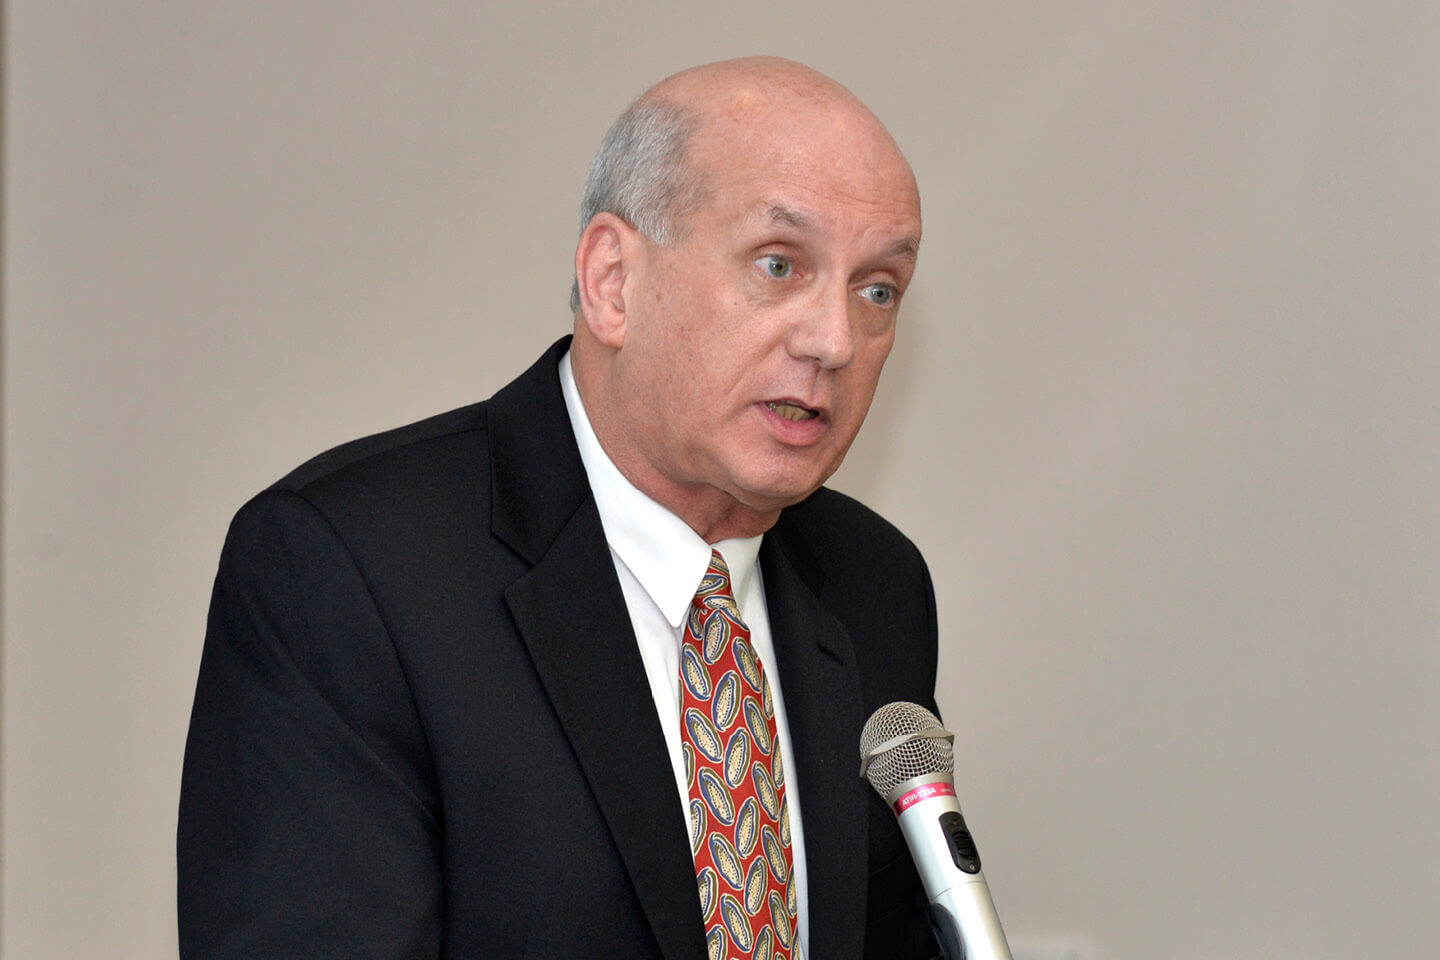 Dr. Michael Golden